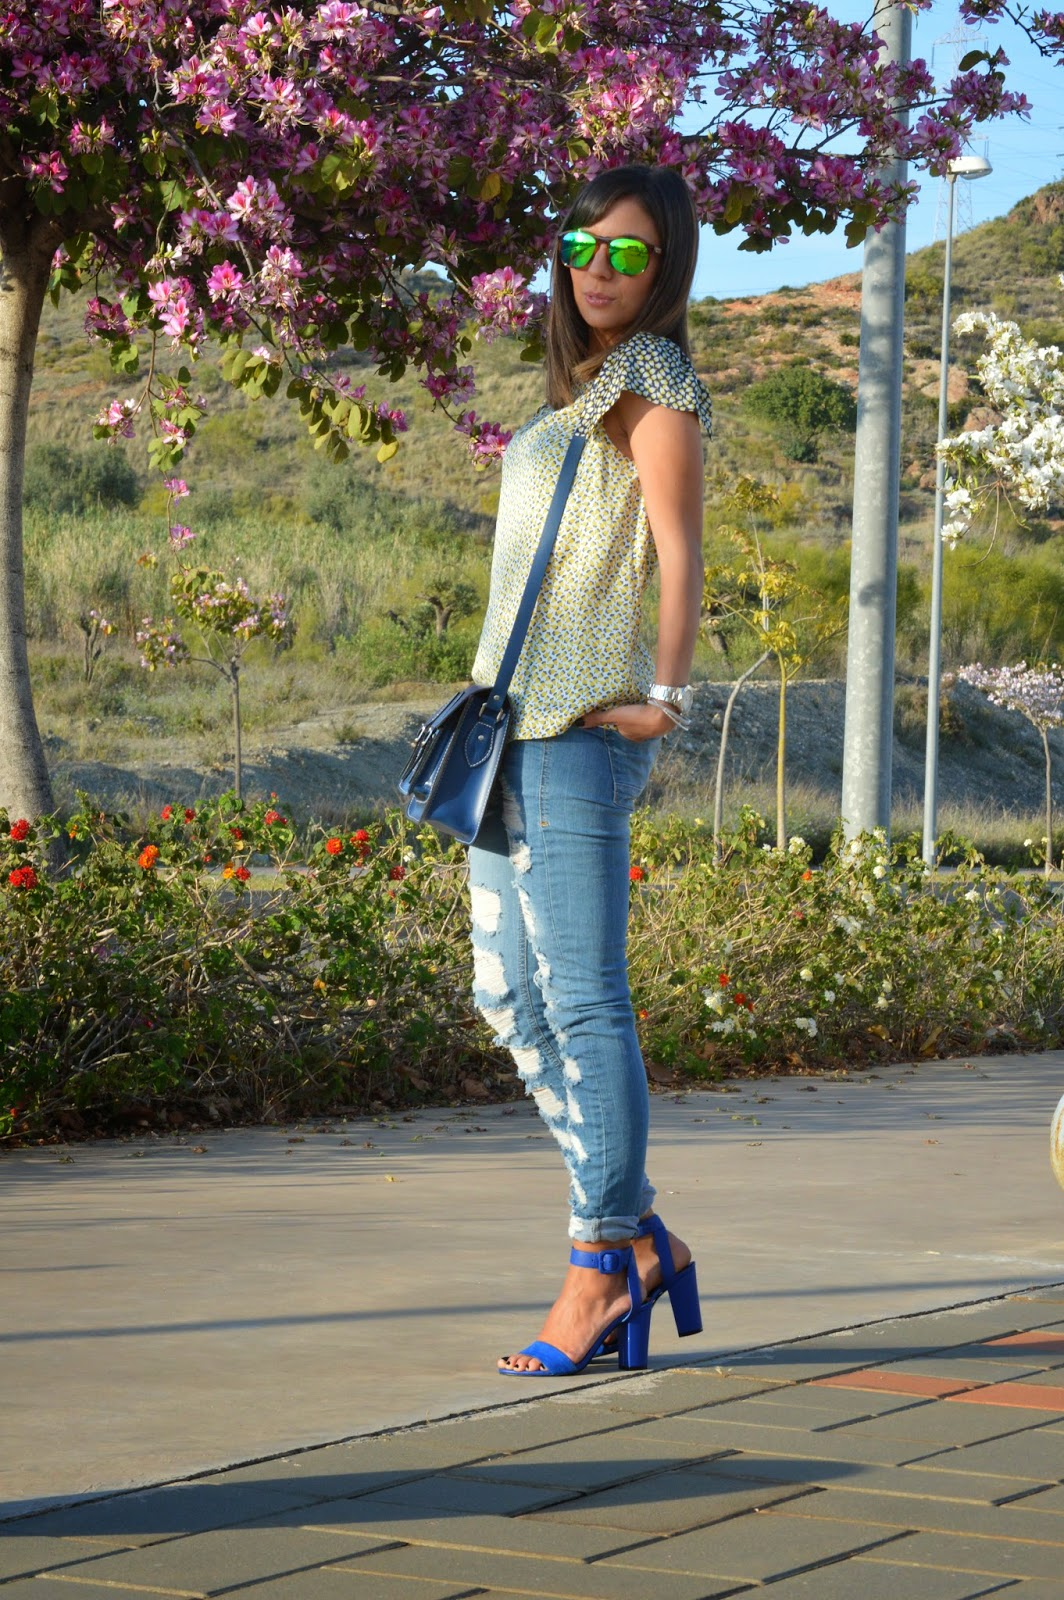 street style style fashion ootd fashion blogger malagueña blogger malagueña  outfit look me girl purse designer swag outfi look chic casual love lovely gorgeous moda mood trend inspiration cristina style ripped jeans zara suiteblanco